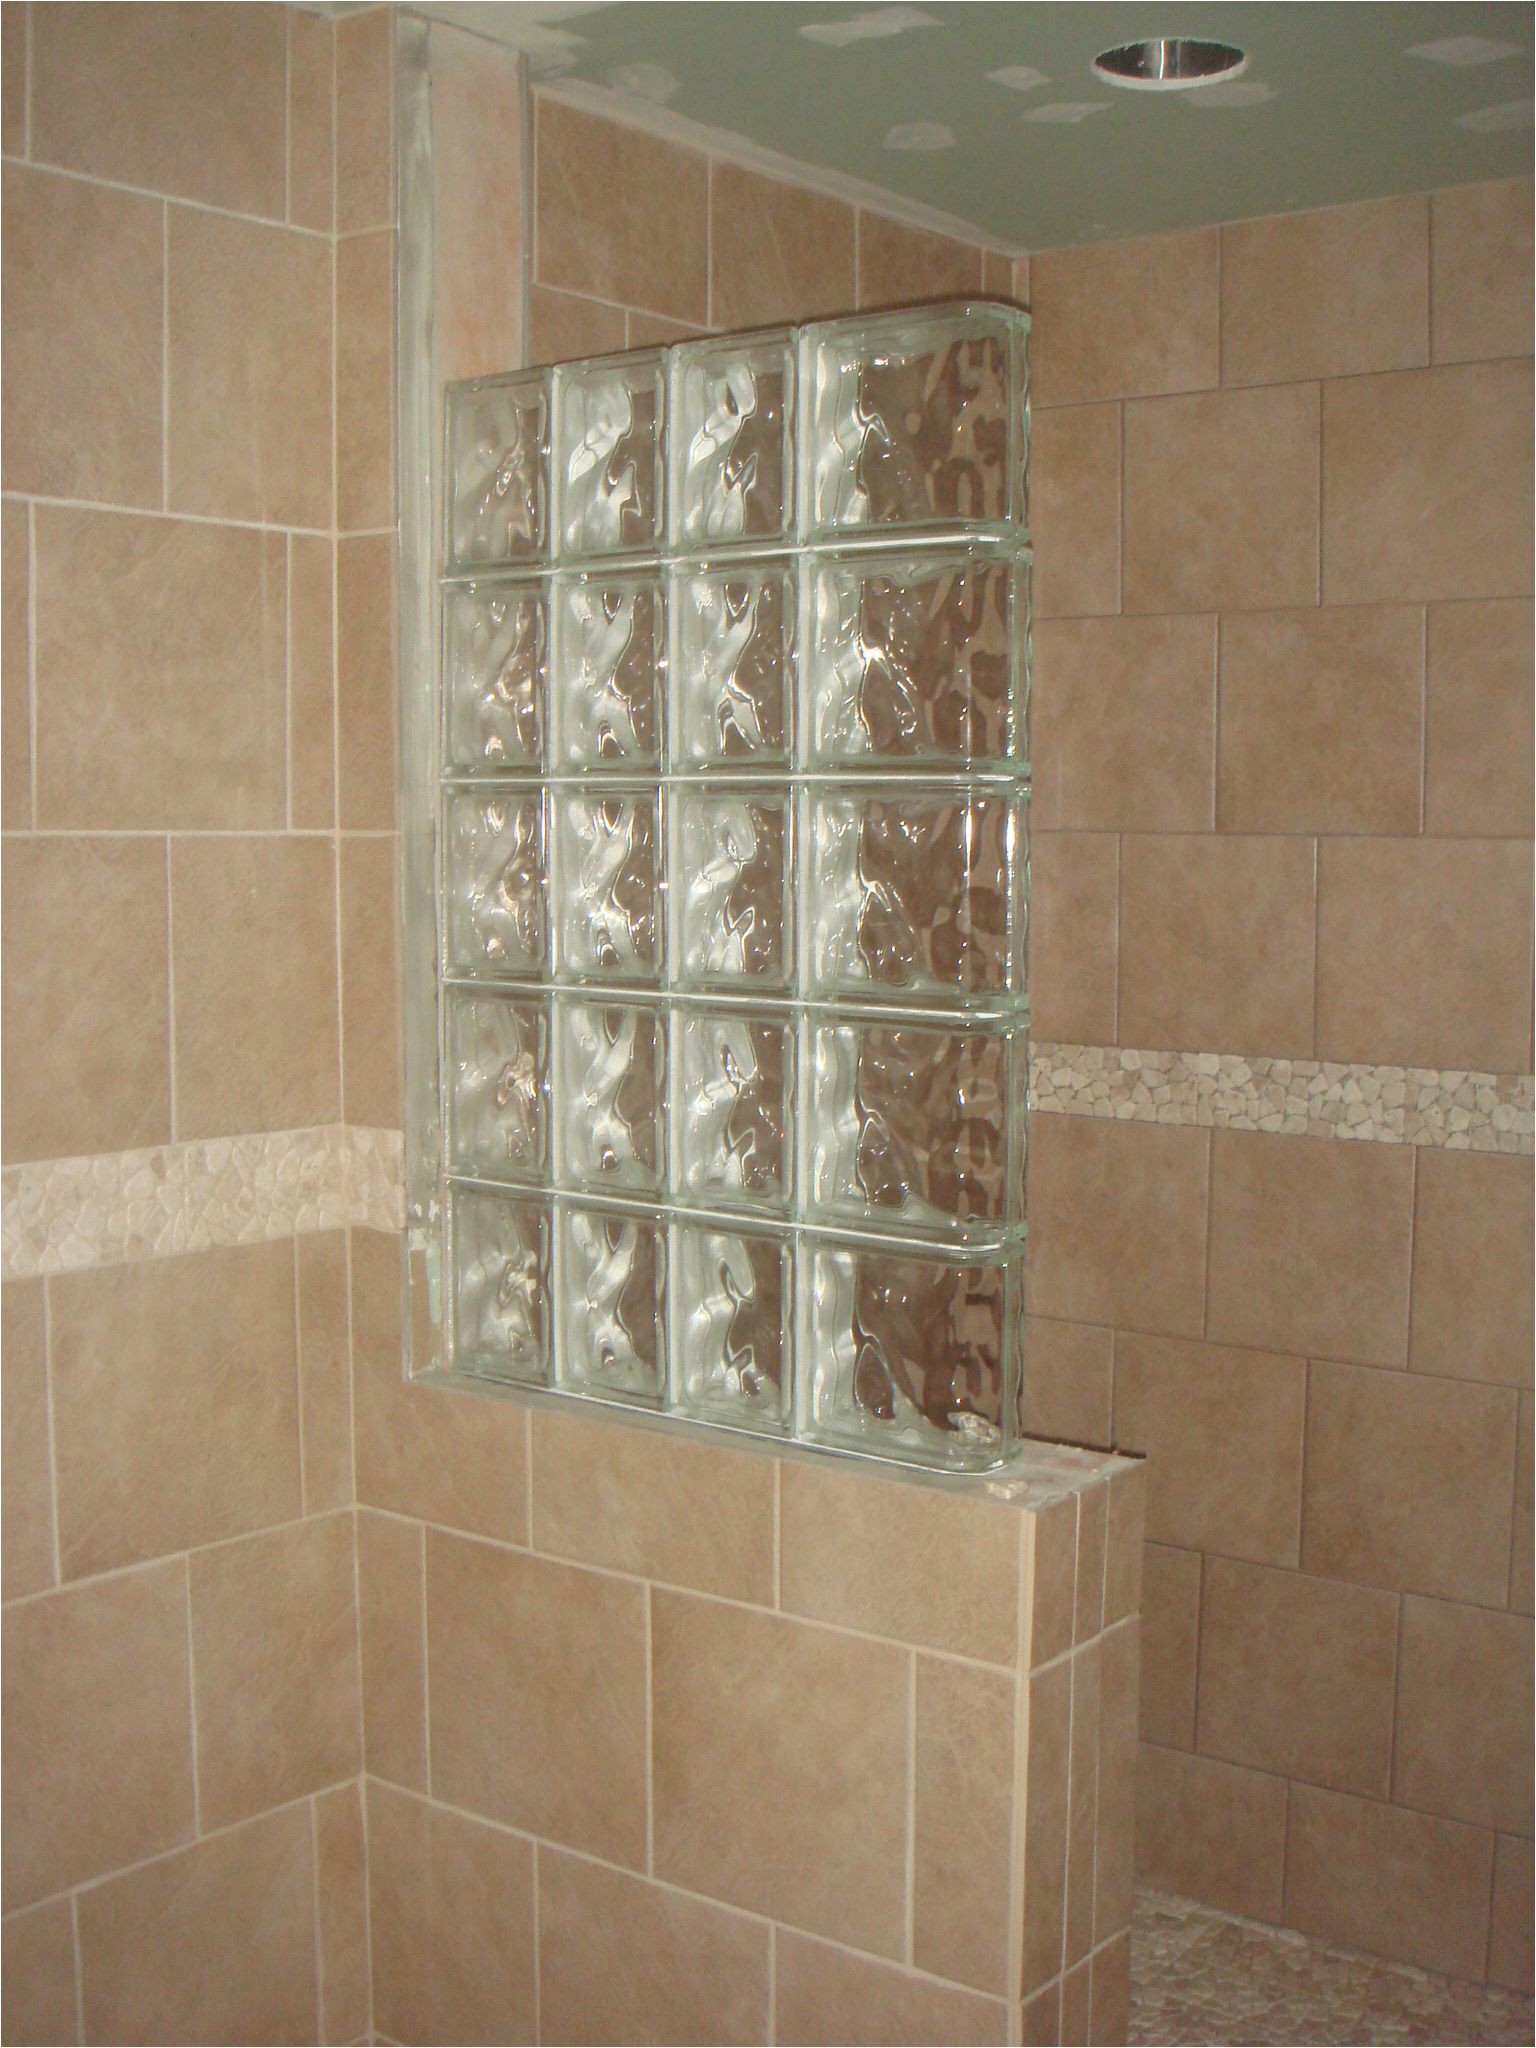 Glass Blocks For Showers Half Wall Shower Design An Addition Some